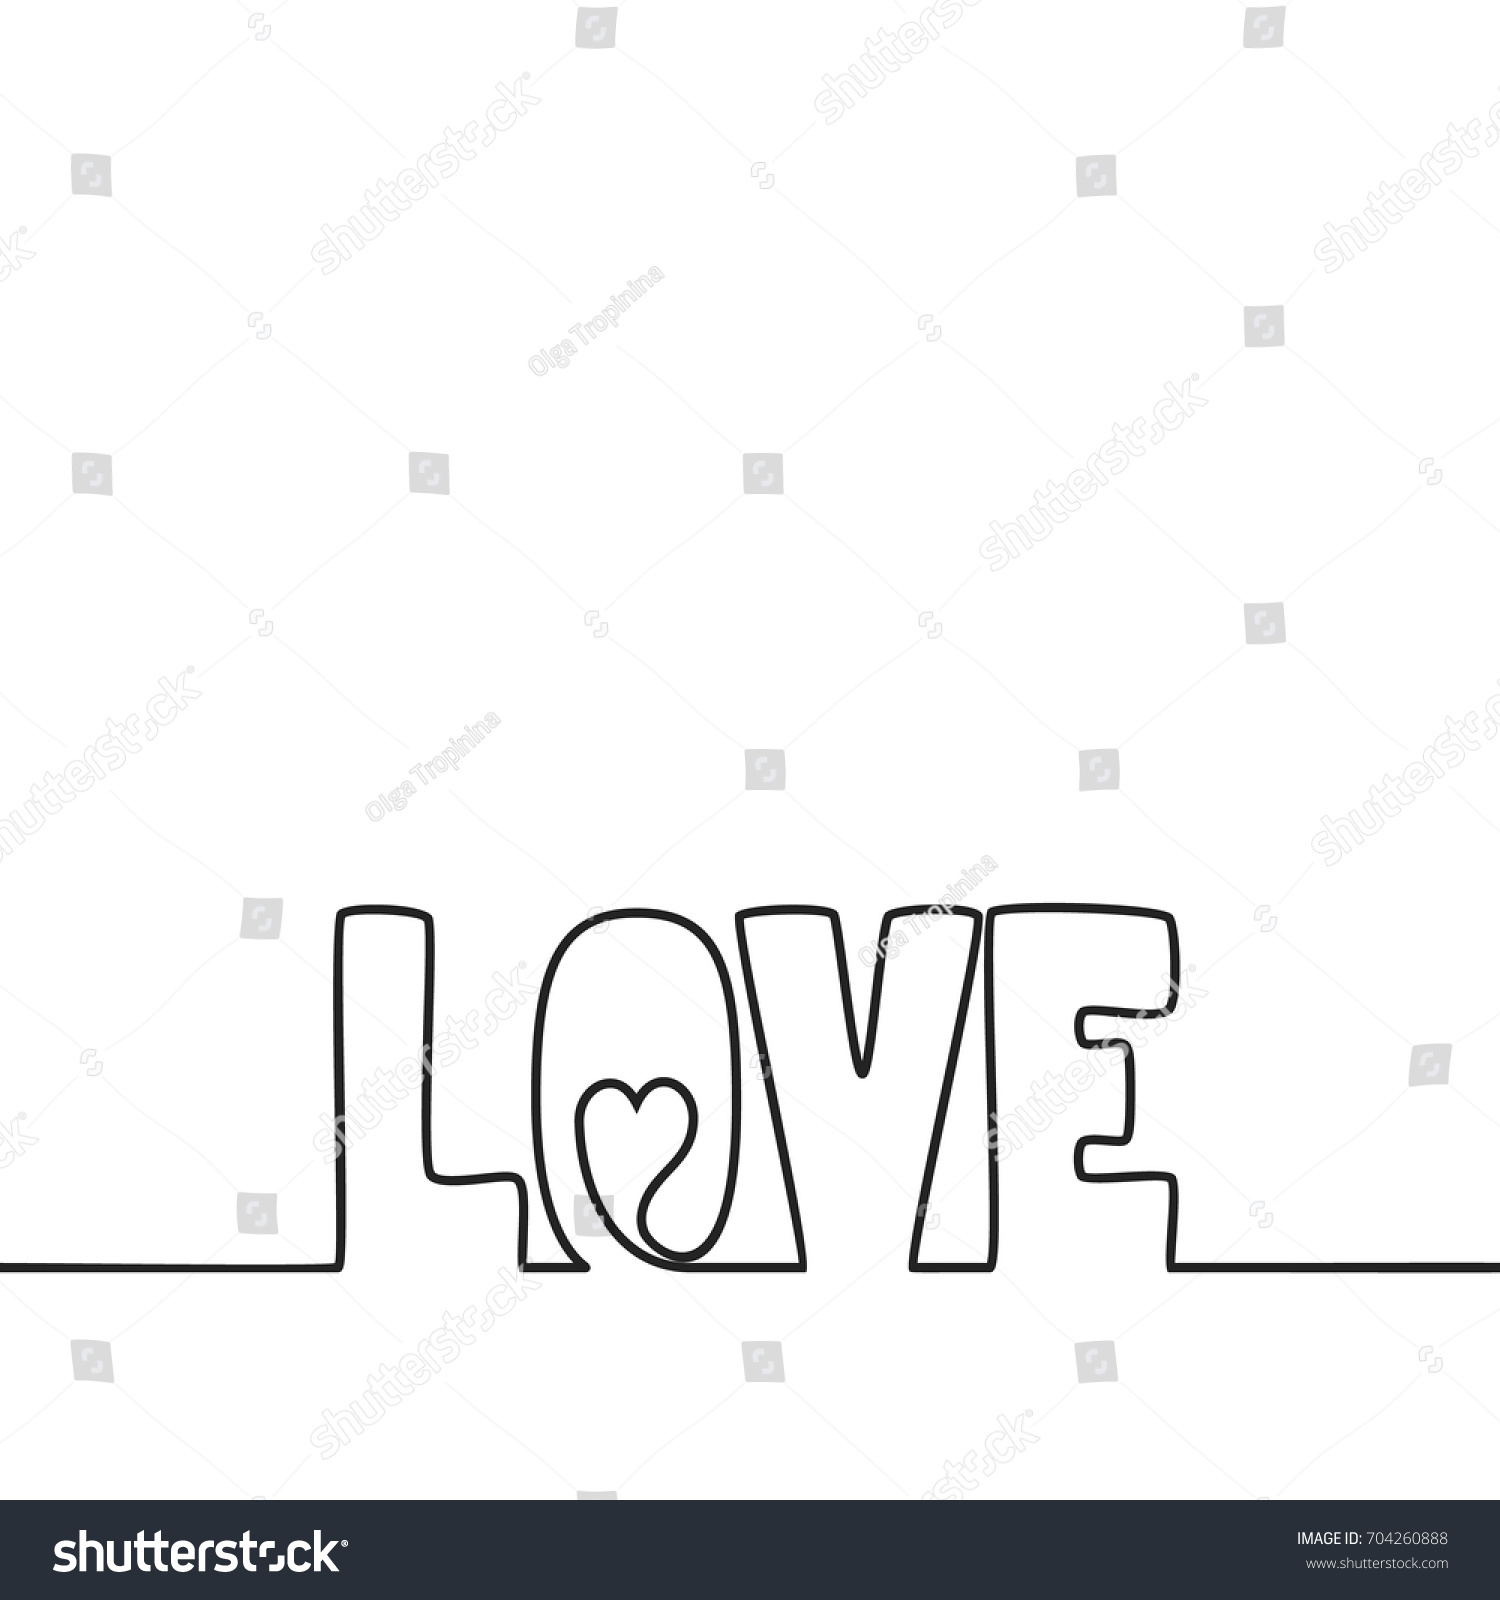 Line Drawing Love : Continuous line drawing love text heart stock vector